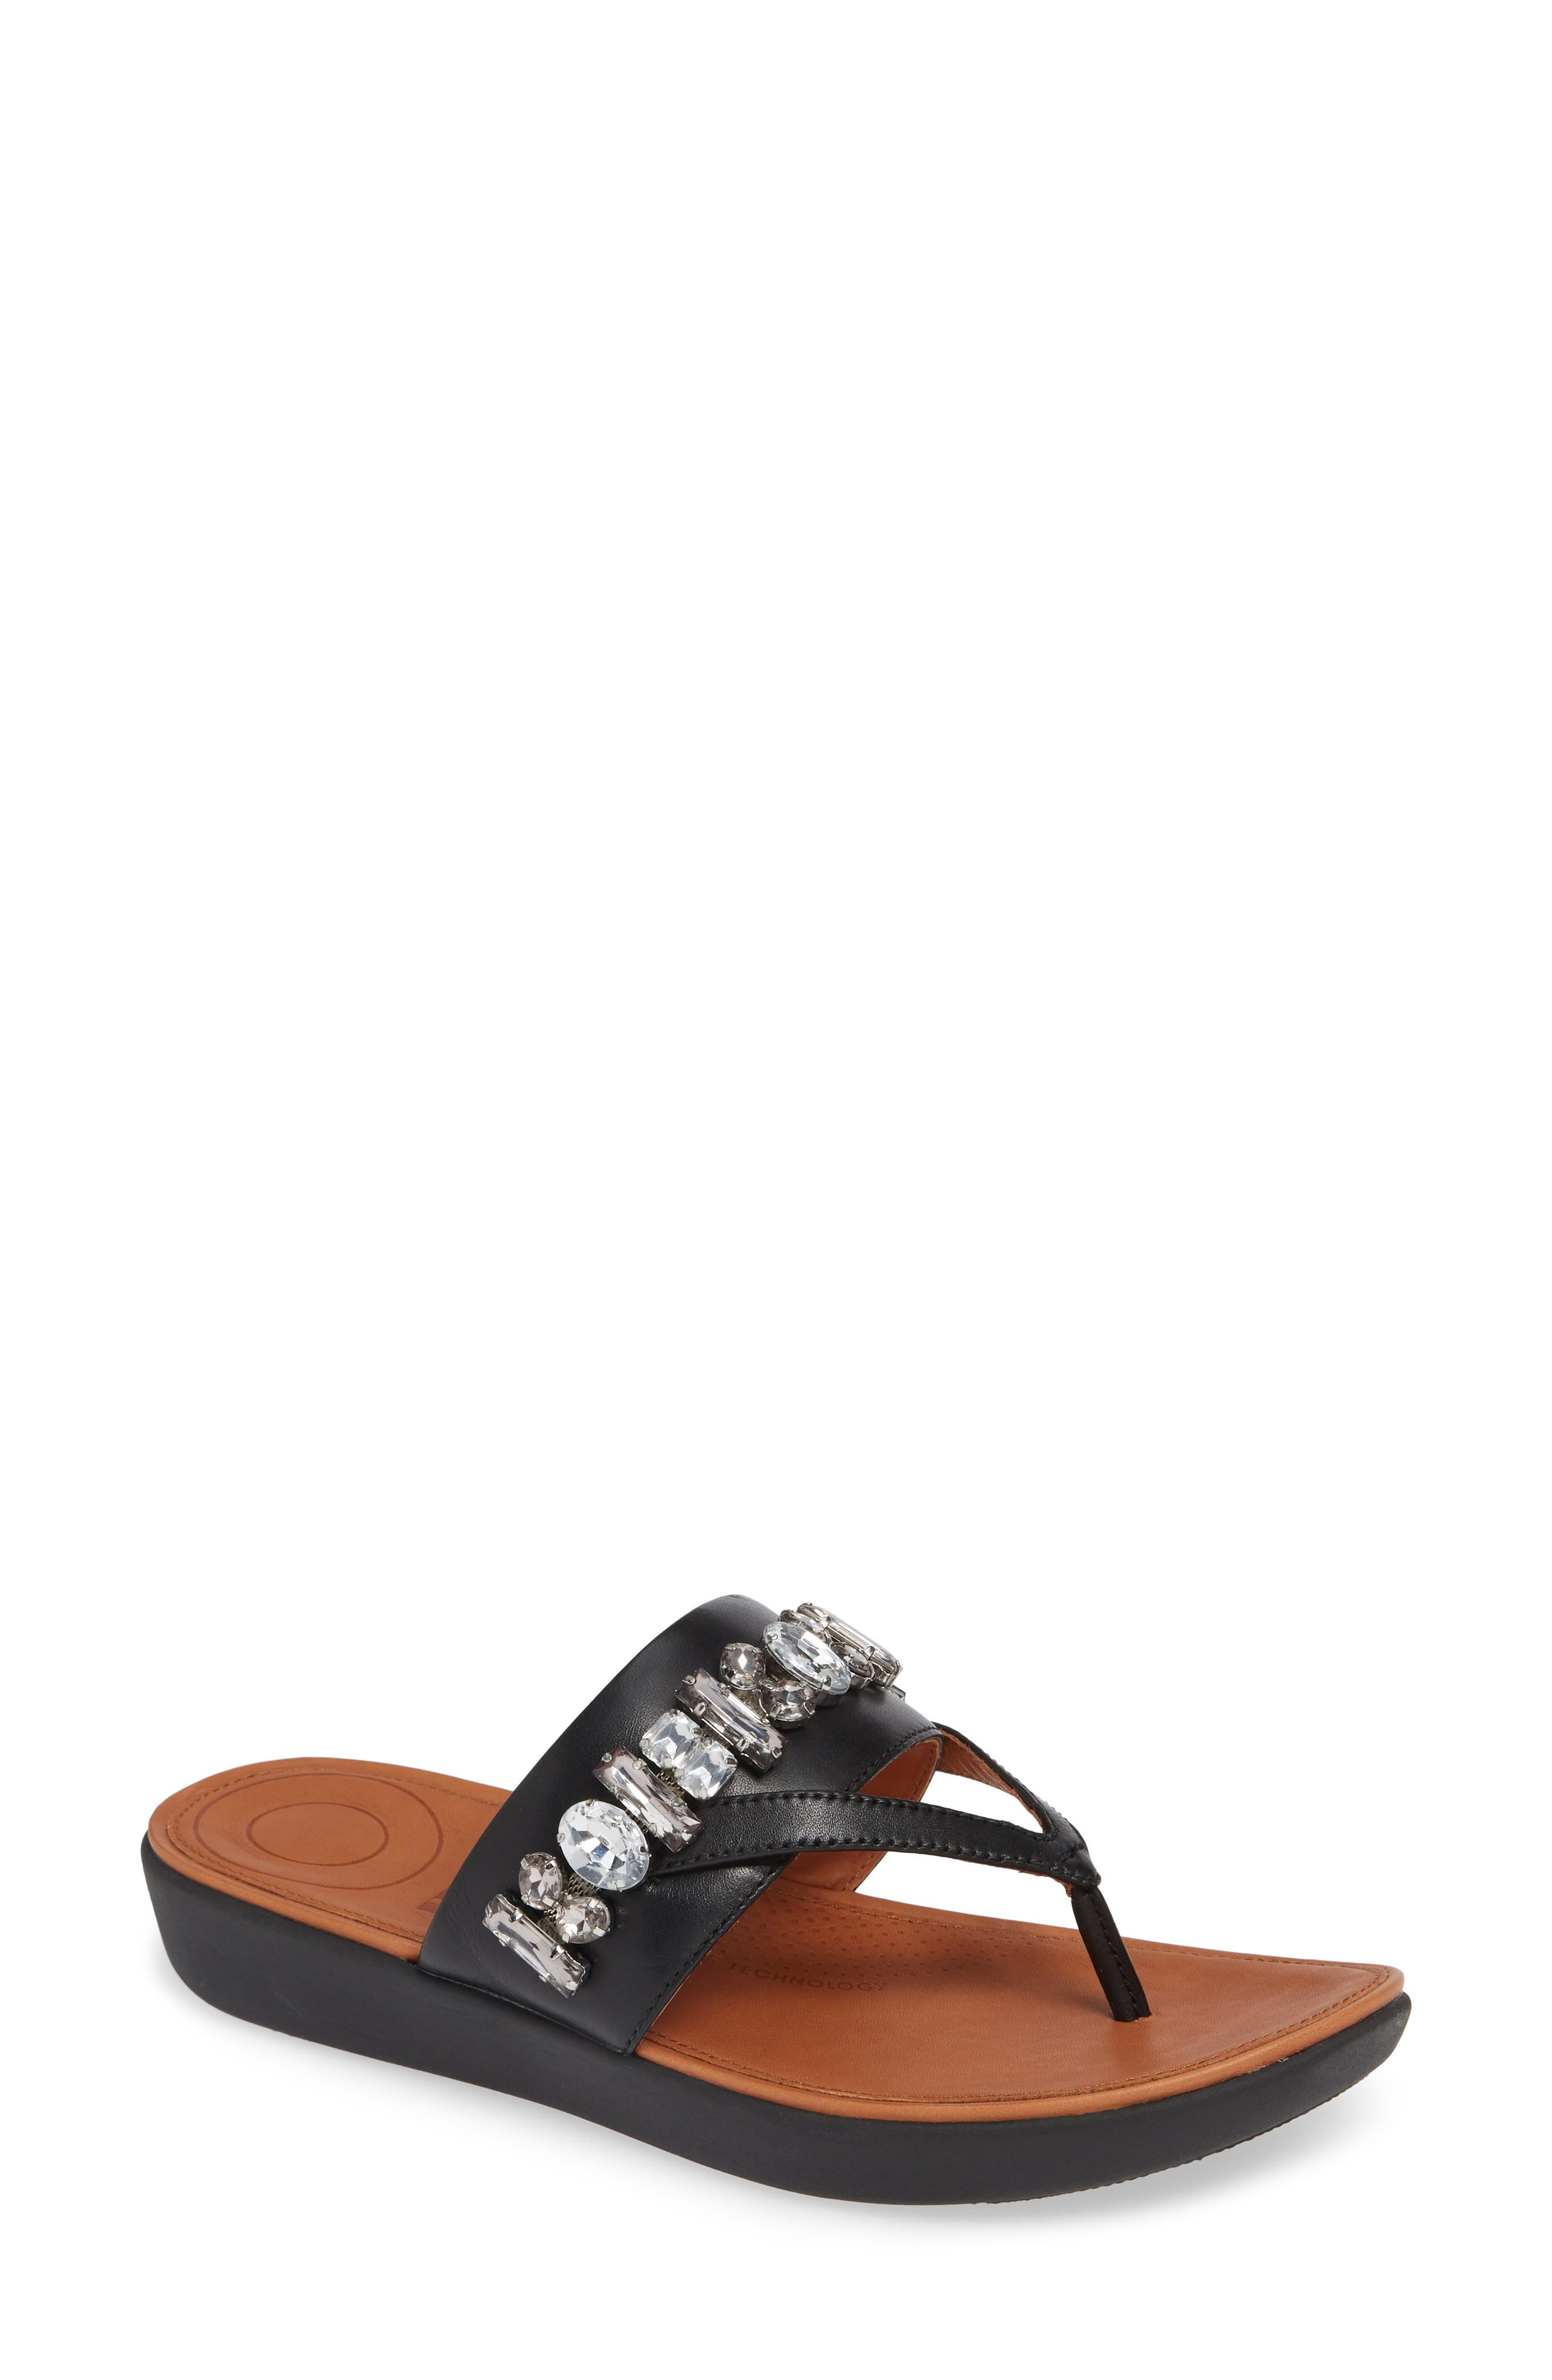 Delta Embellished Slide Sandal,                         Main,                         color, 001